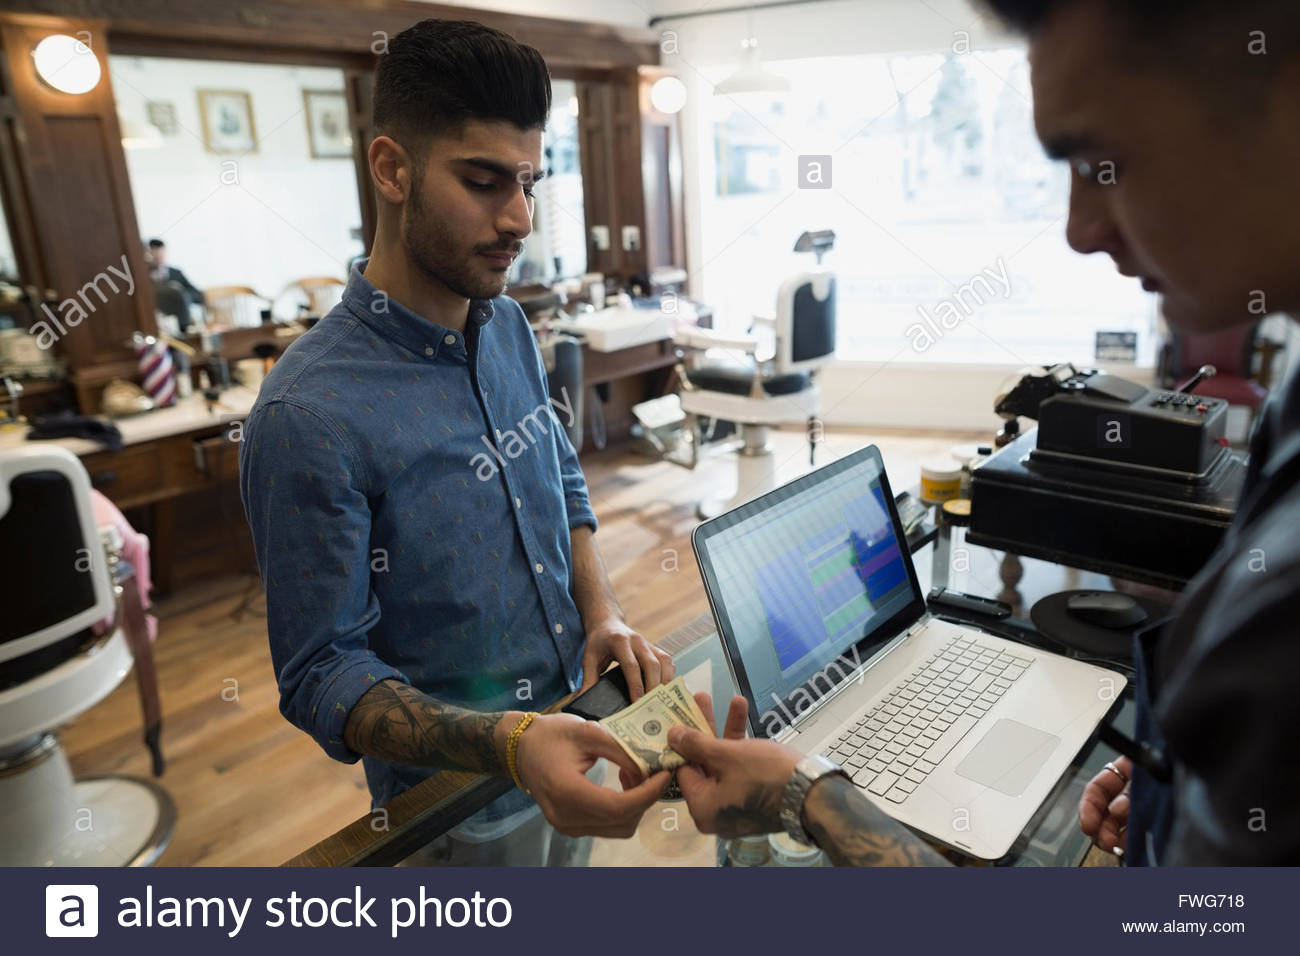 Man paying barber with cash in barber shop - Stock Image